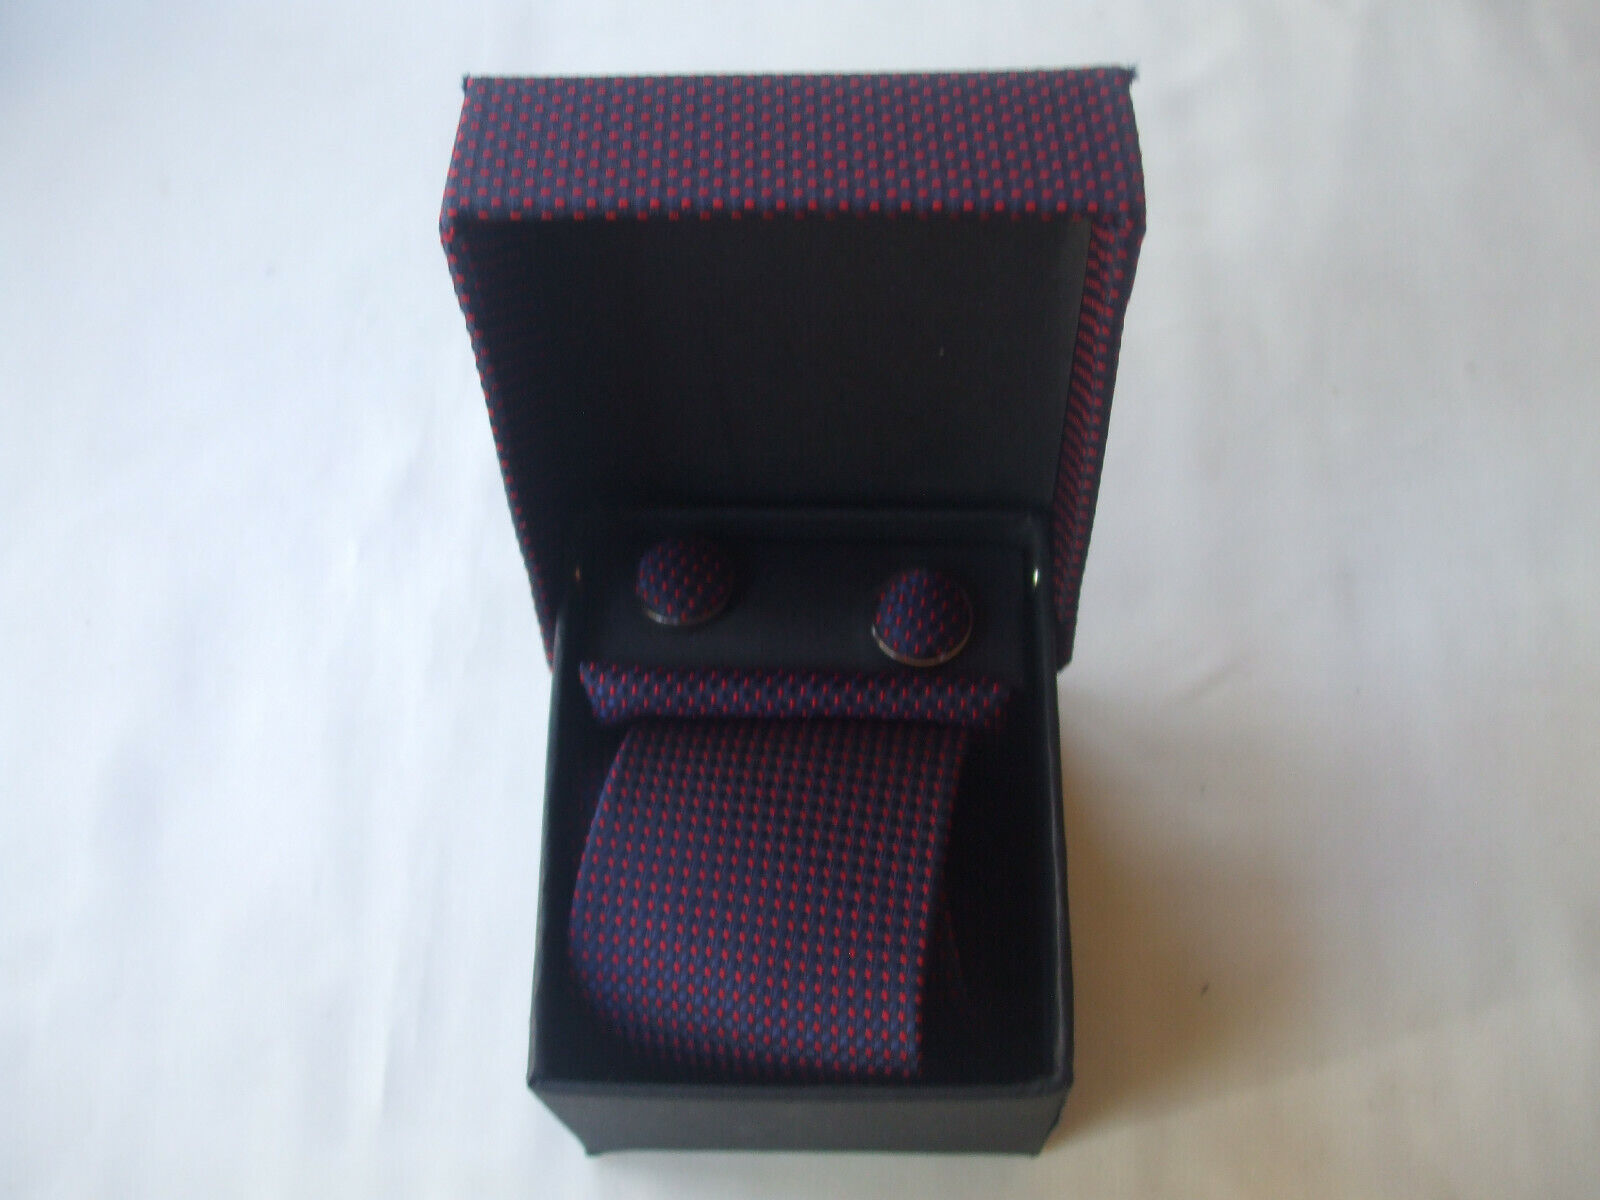 New For Fathers Day Boxed Tie, Cufflinks And Handkerchief Set Navy Red Dots New